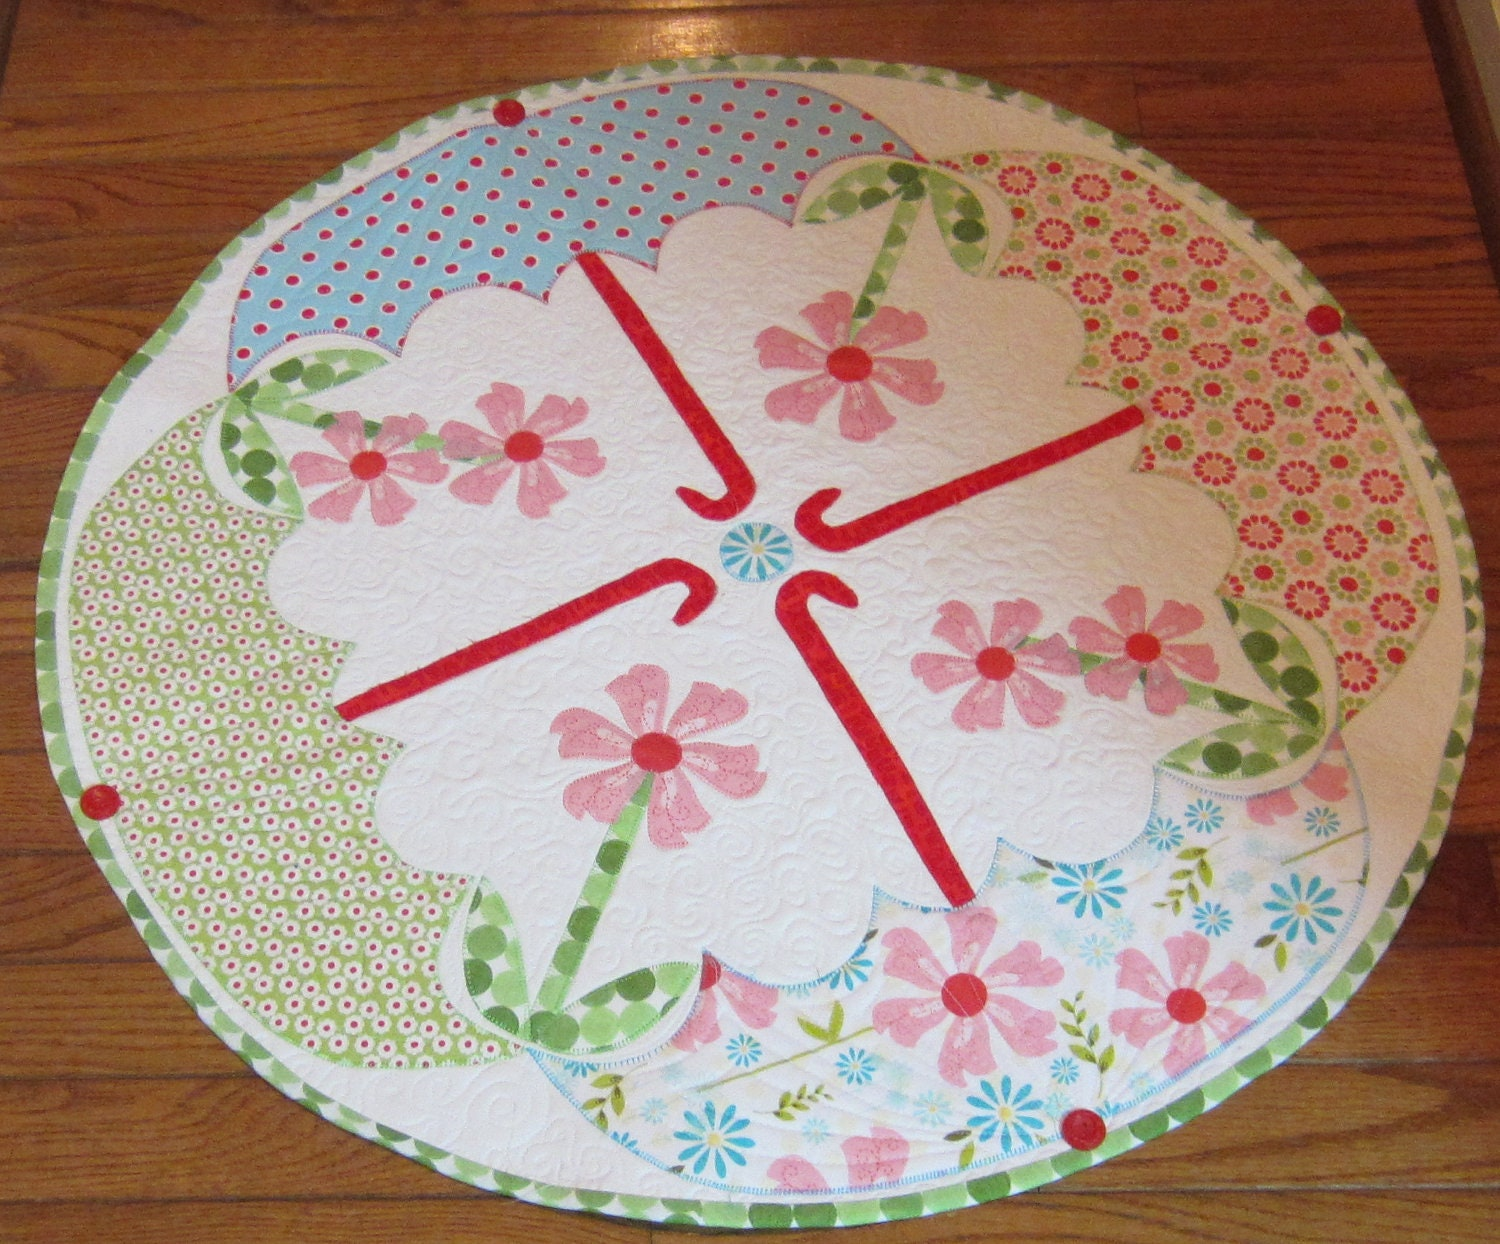 april showers round table topper pattern